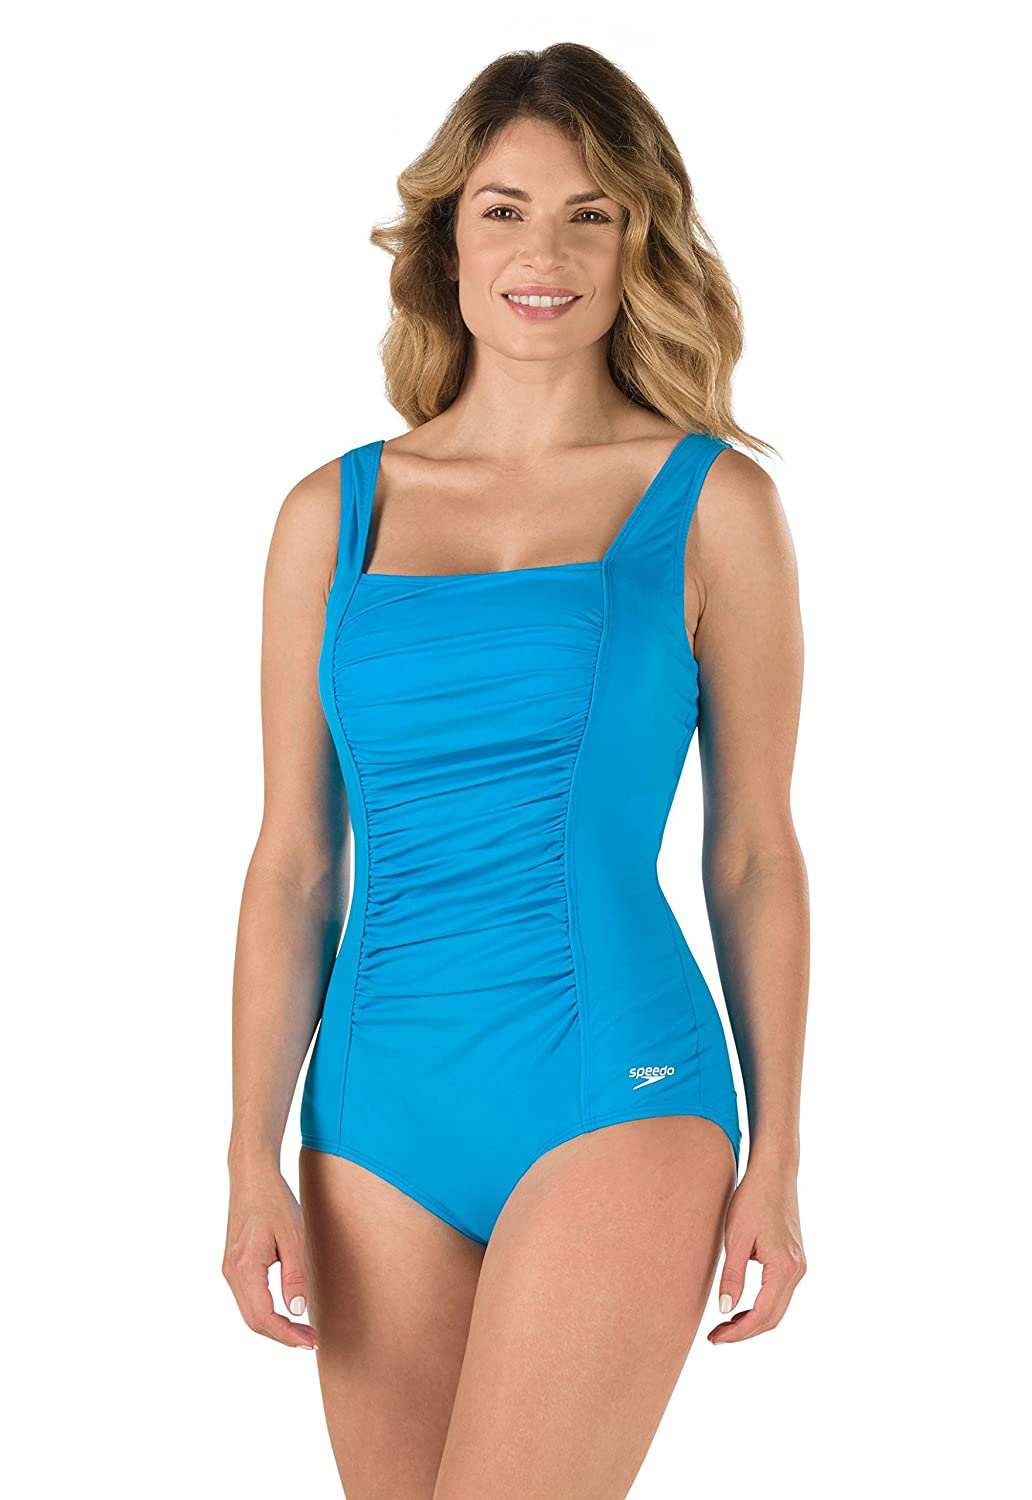 bluee Sky Speedo Women's Endurance+ Shirred Tank One Piece Swimsuit